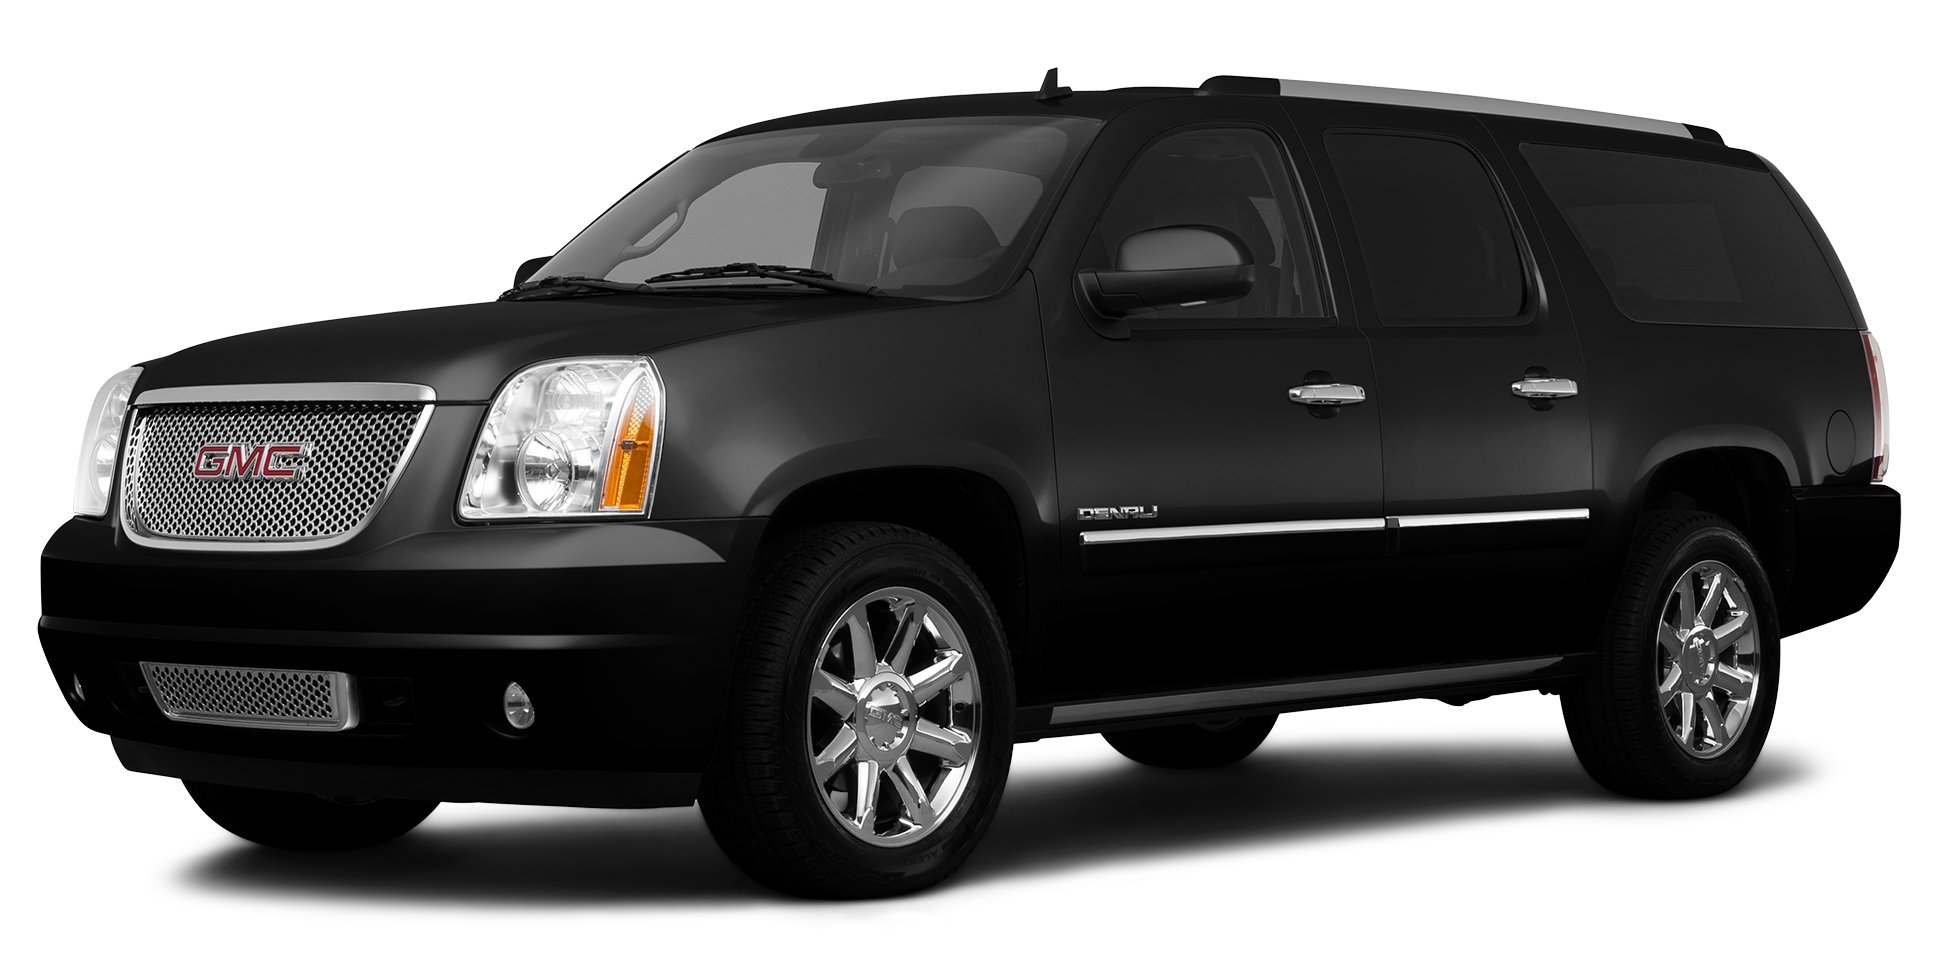 2011 gmc yukon xl 1500 reviews images and. Black Bedroom Furniture Sets. Home Design Ideas